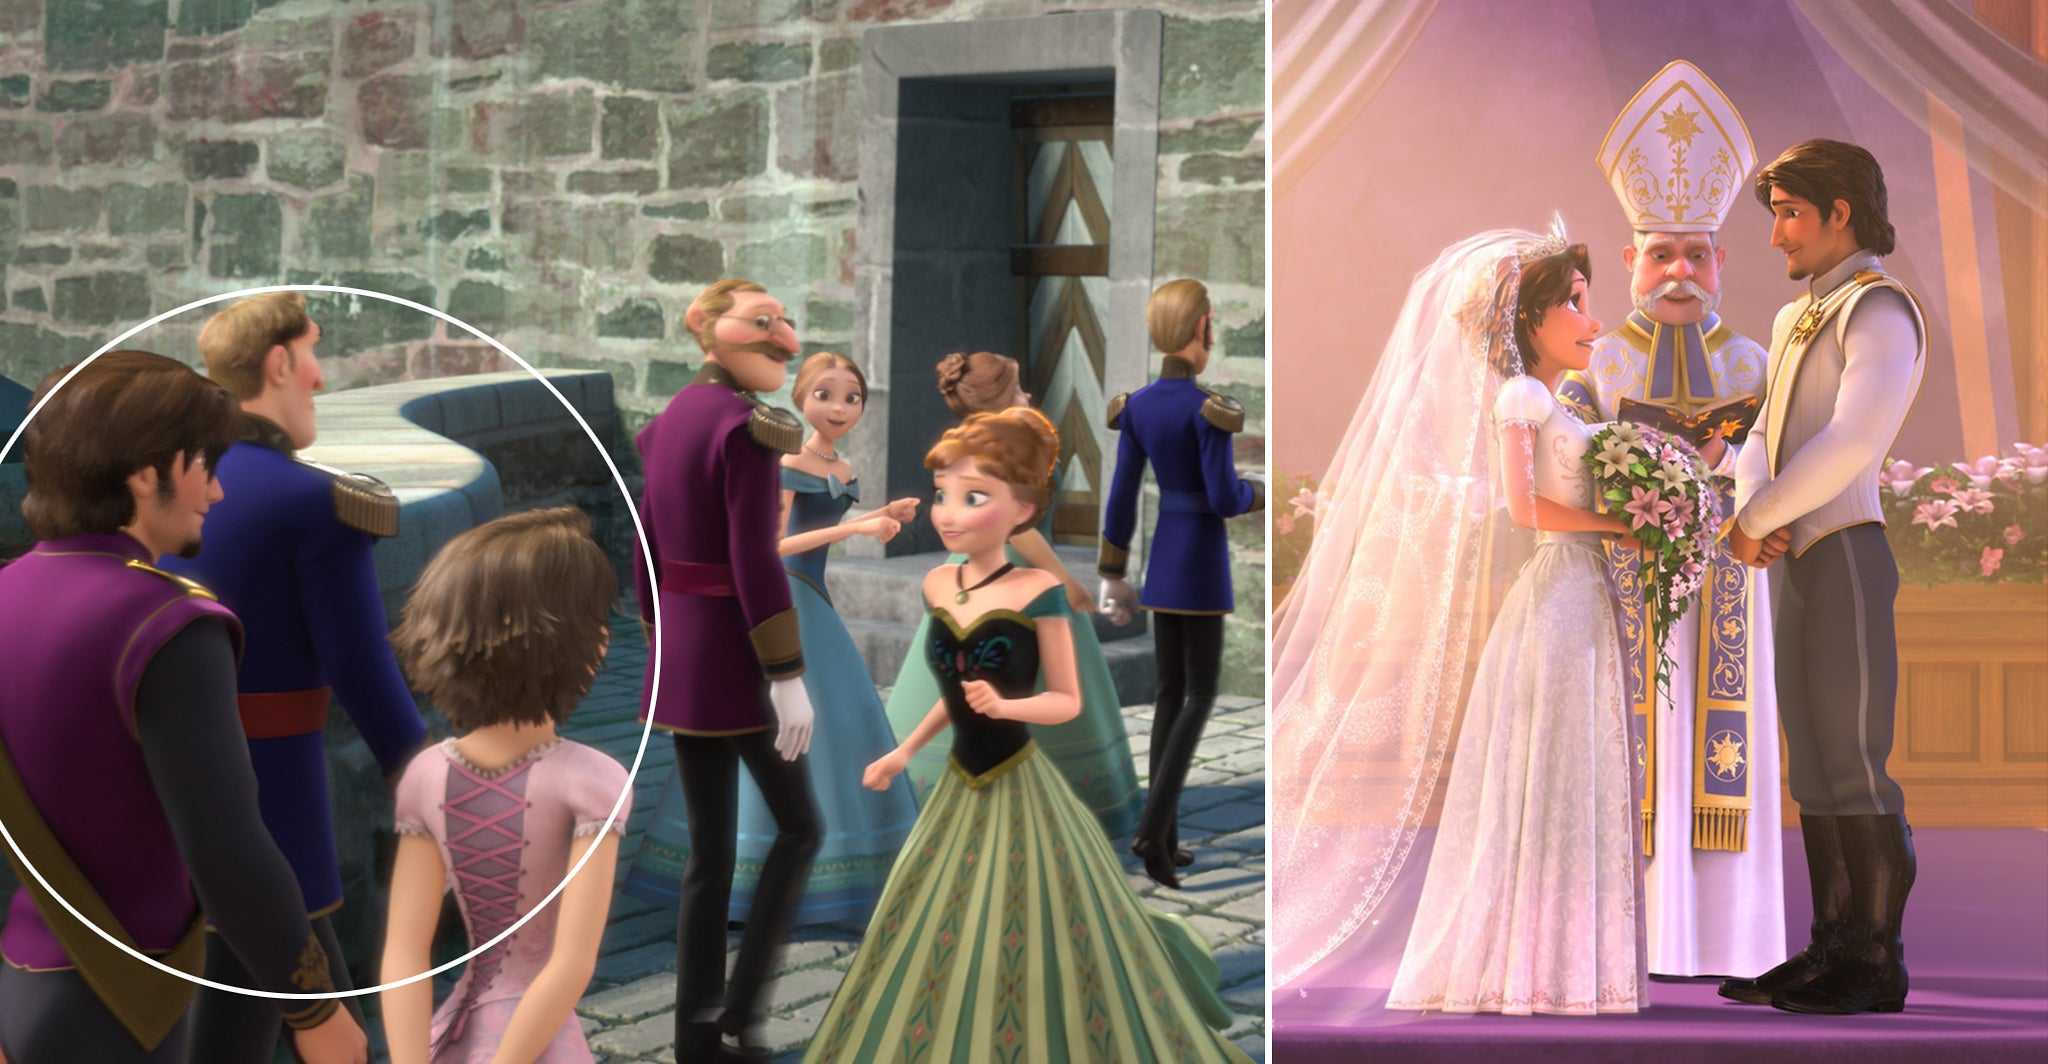 Pixar films aren't the only movies with amazing fan-theories, you ...